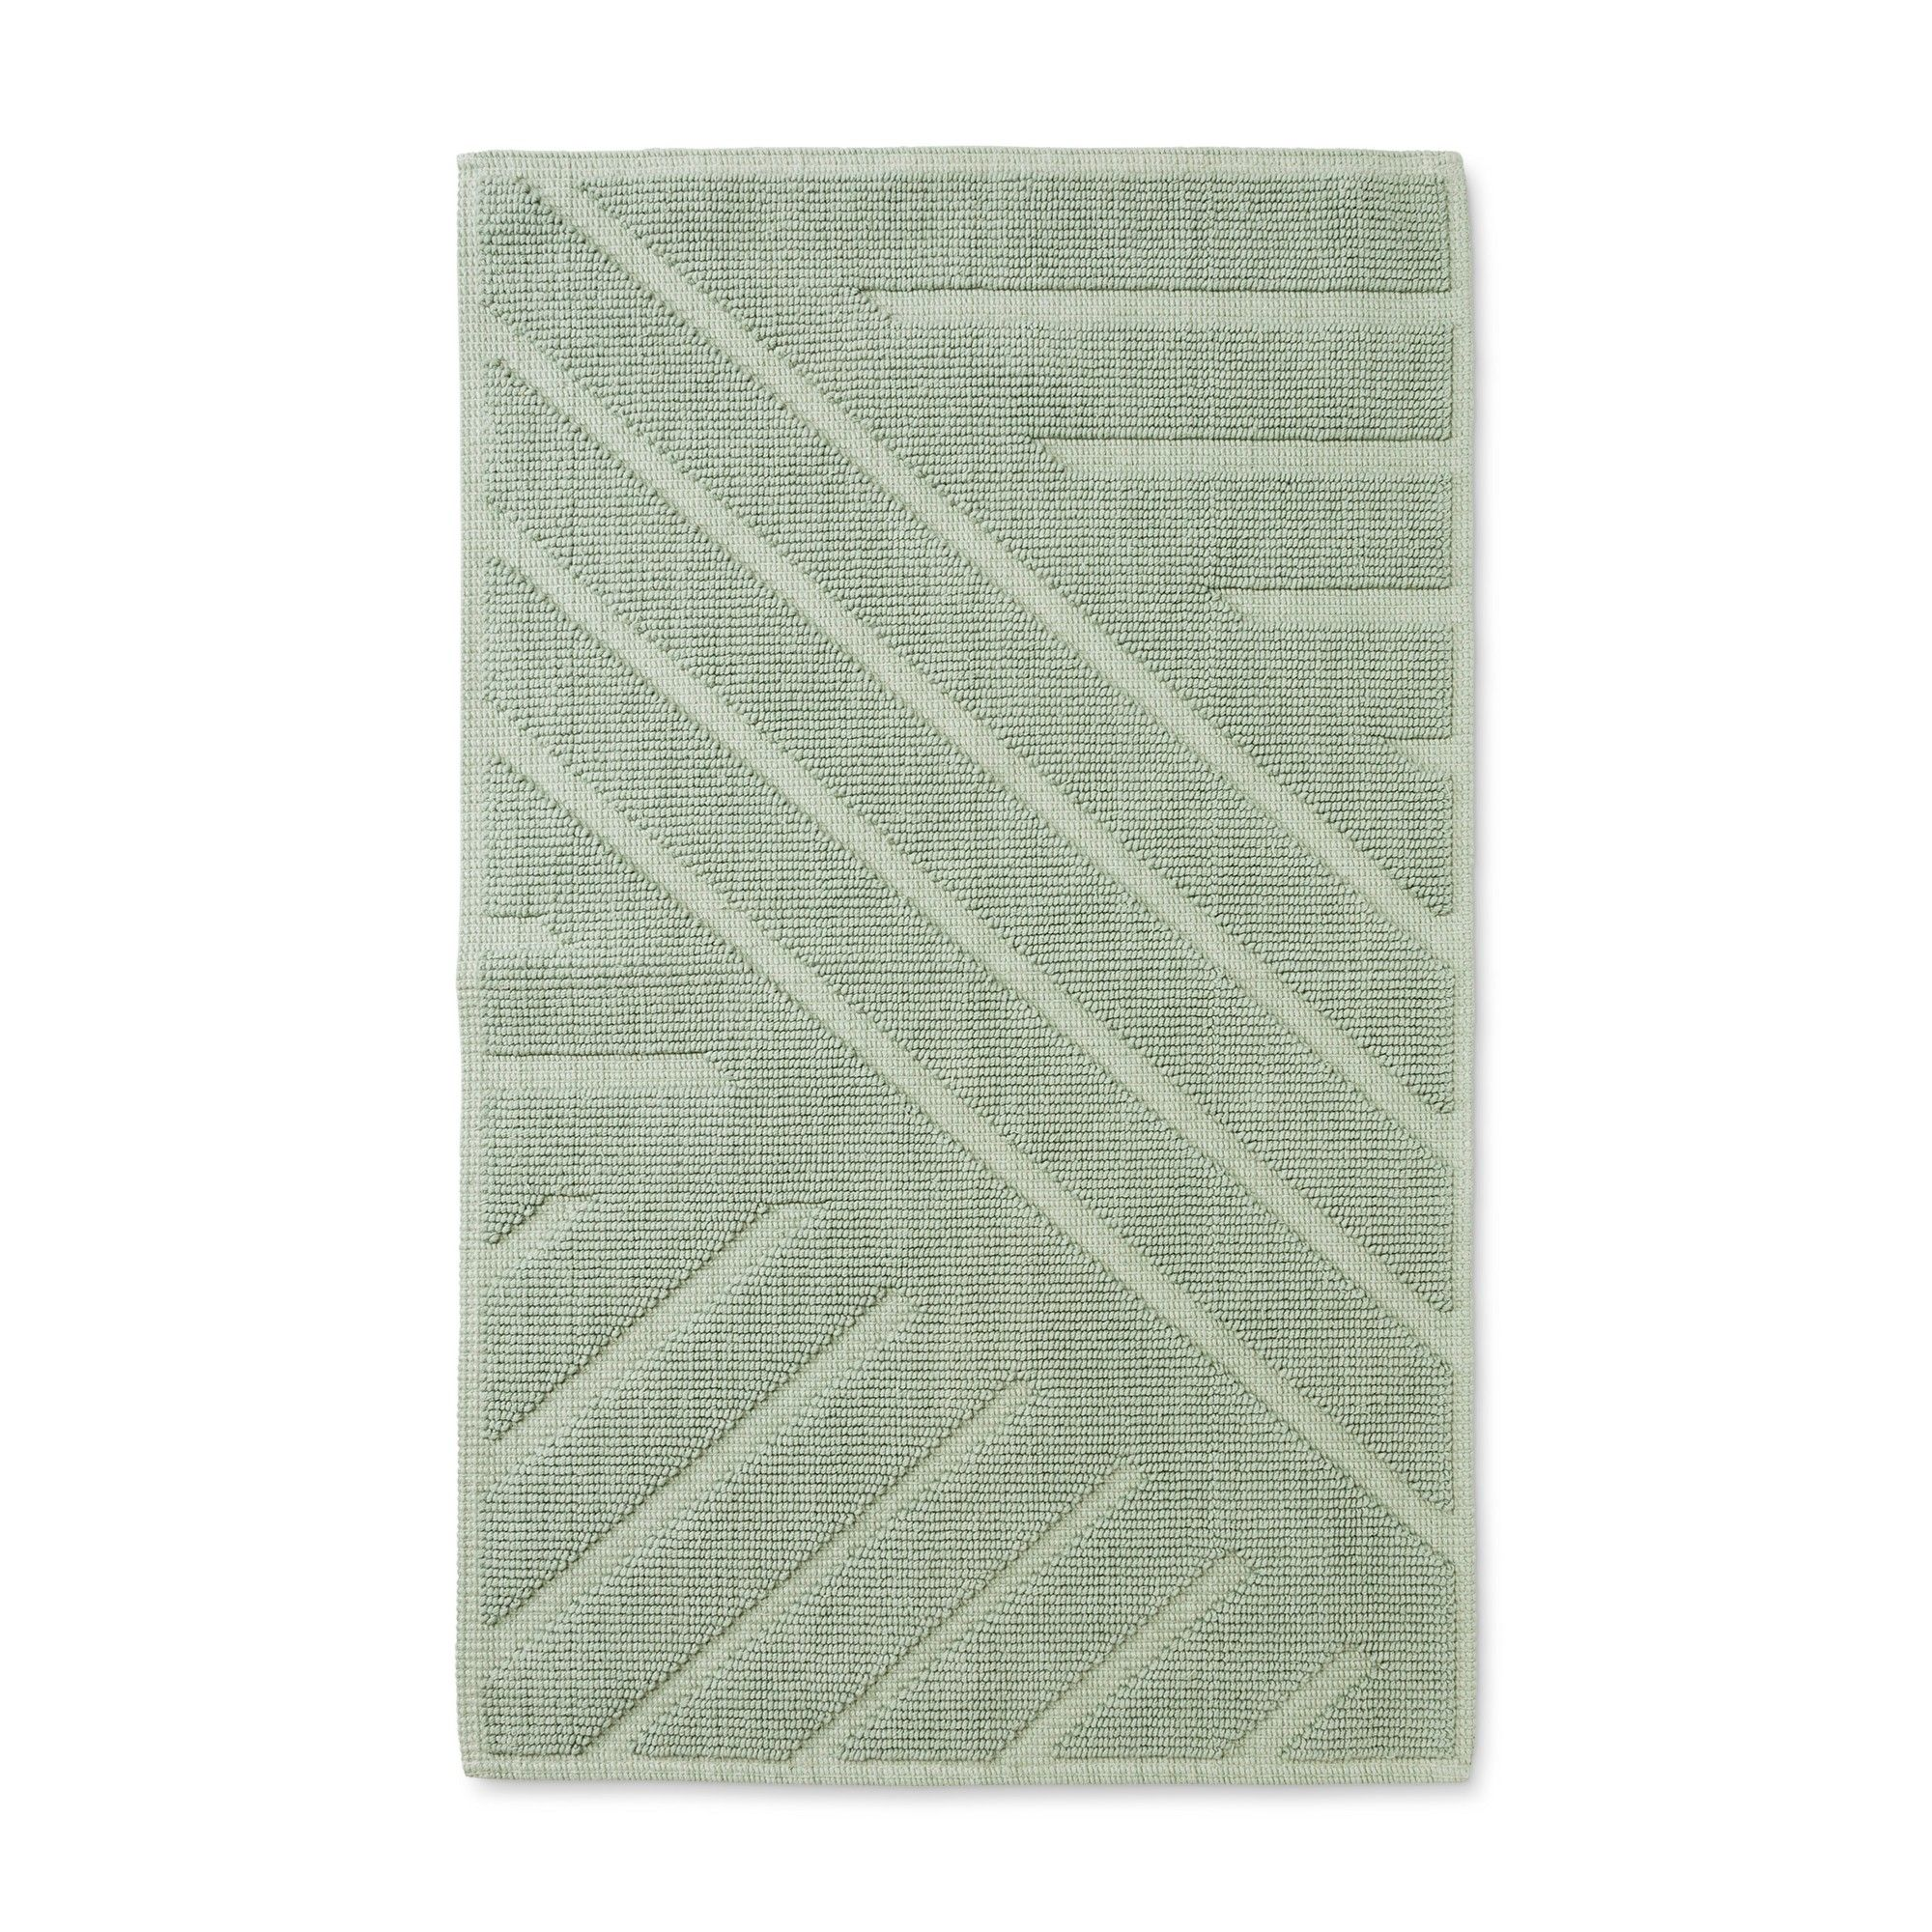 34 X20 Woven Cotton Bath Rug Green Project 62 Nate